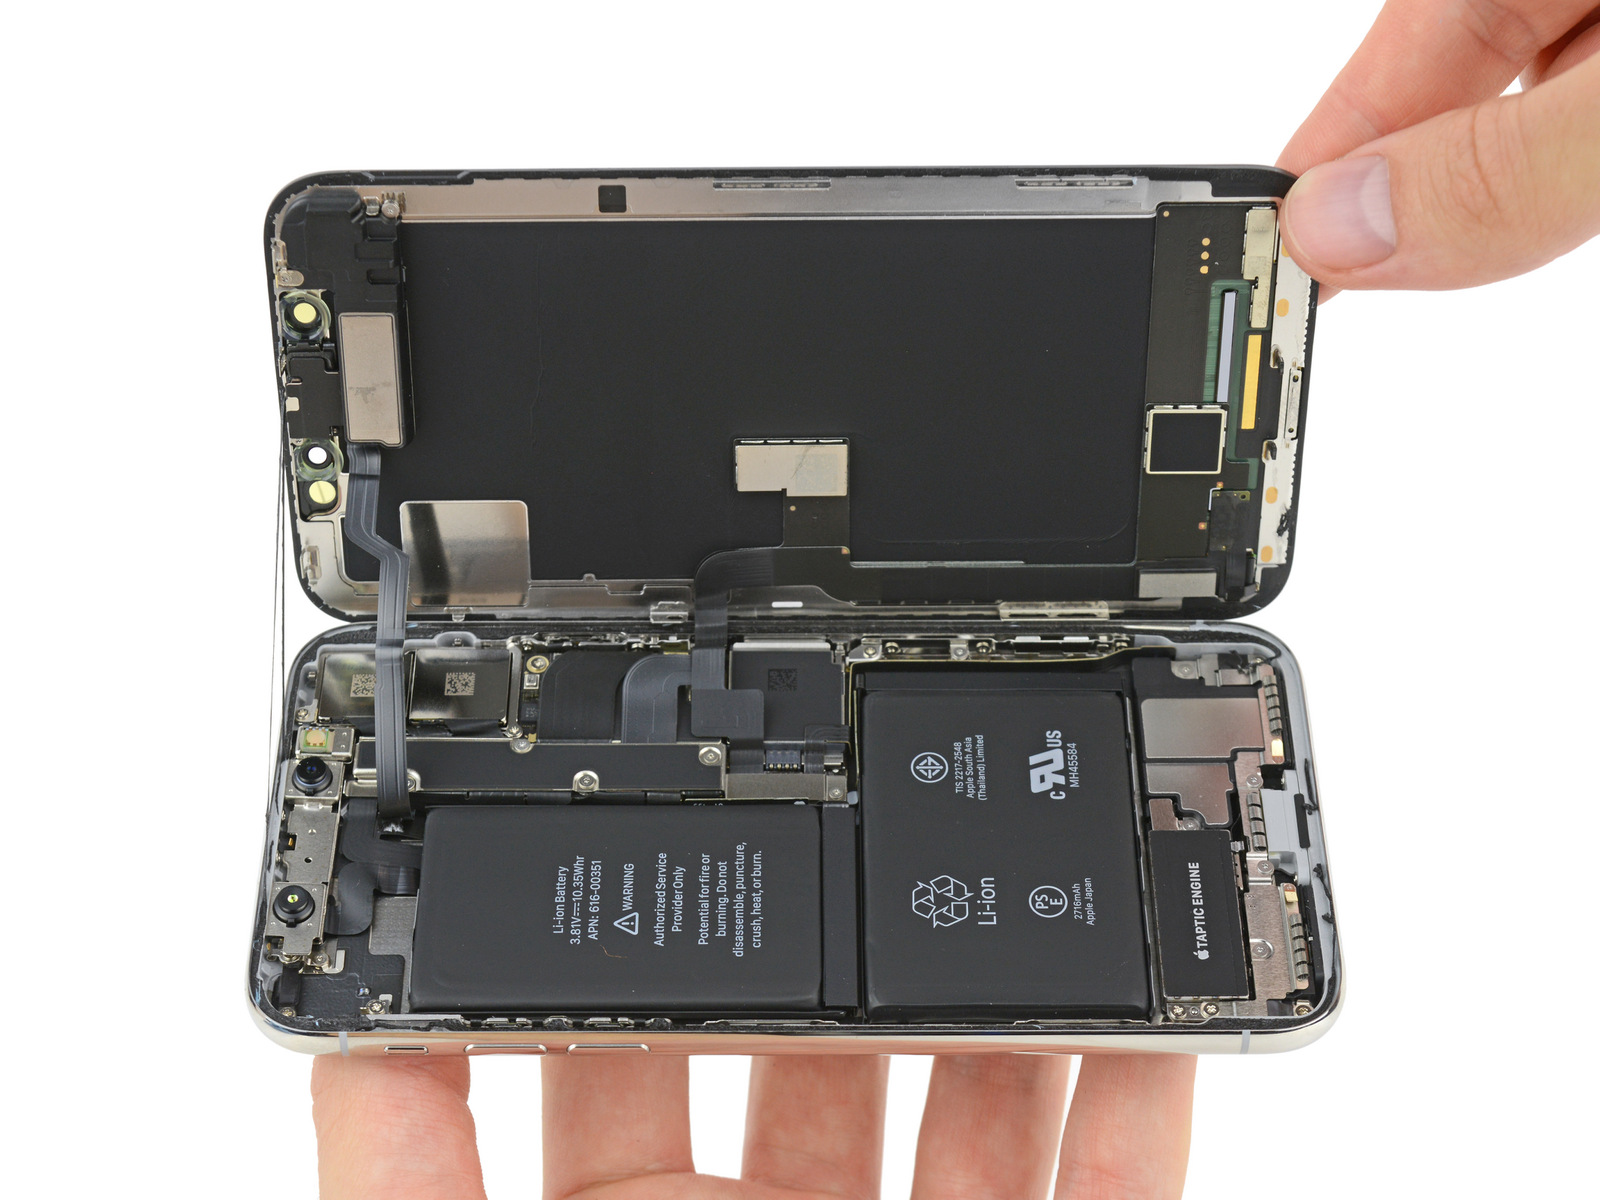 Ifixits Iphone X Teardown Finds Two Battery Cells And An Ipad 2 Logic Board Diagram Enlarge